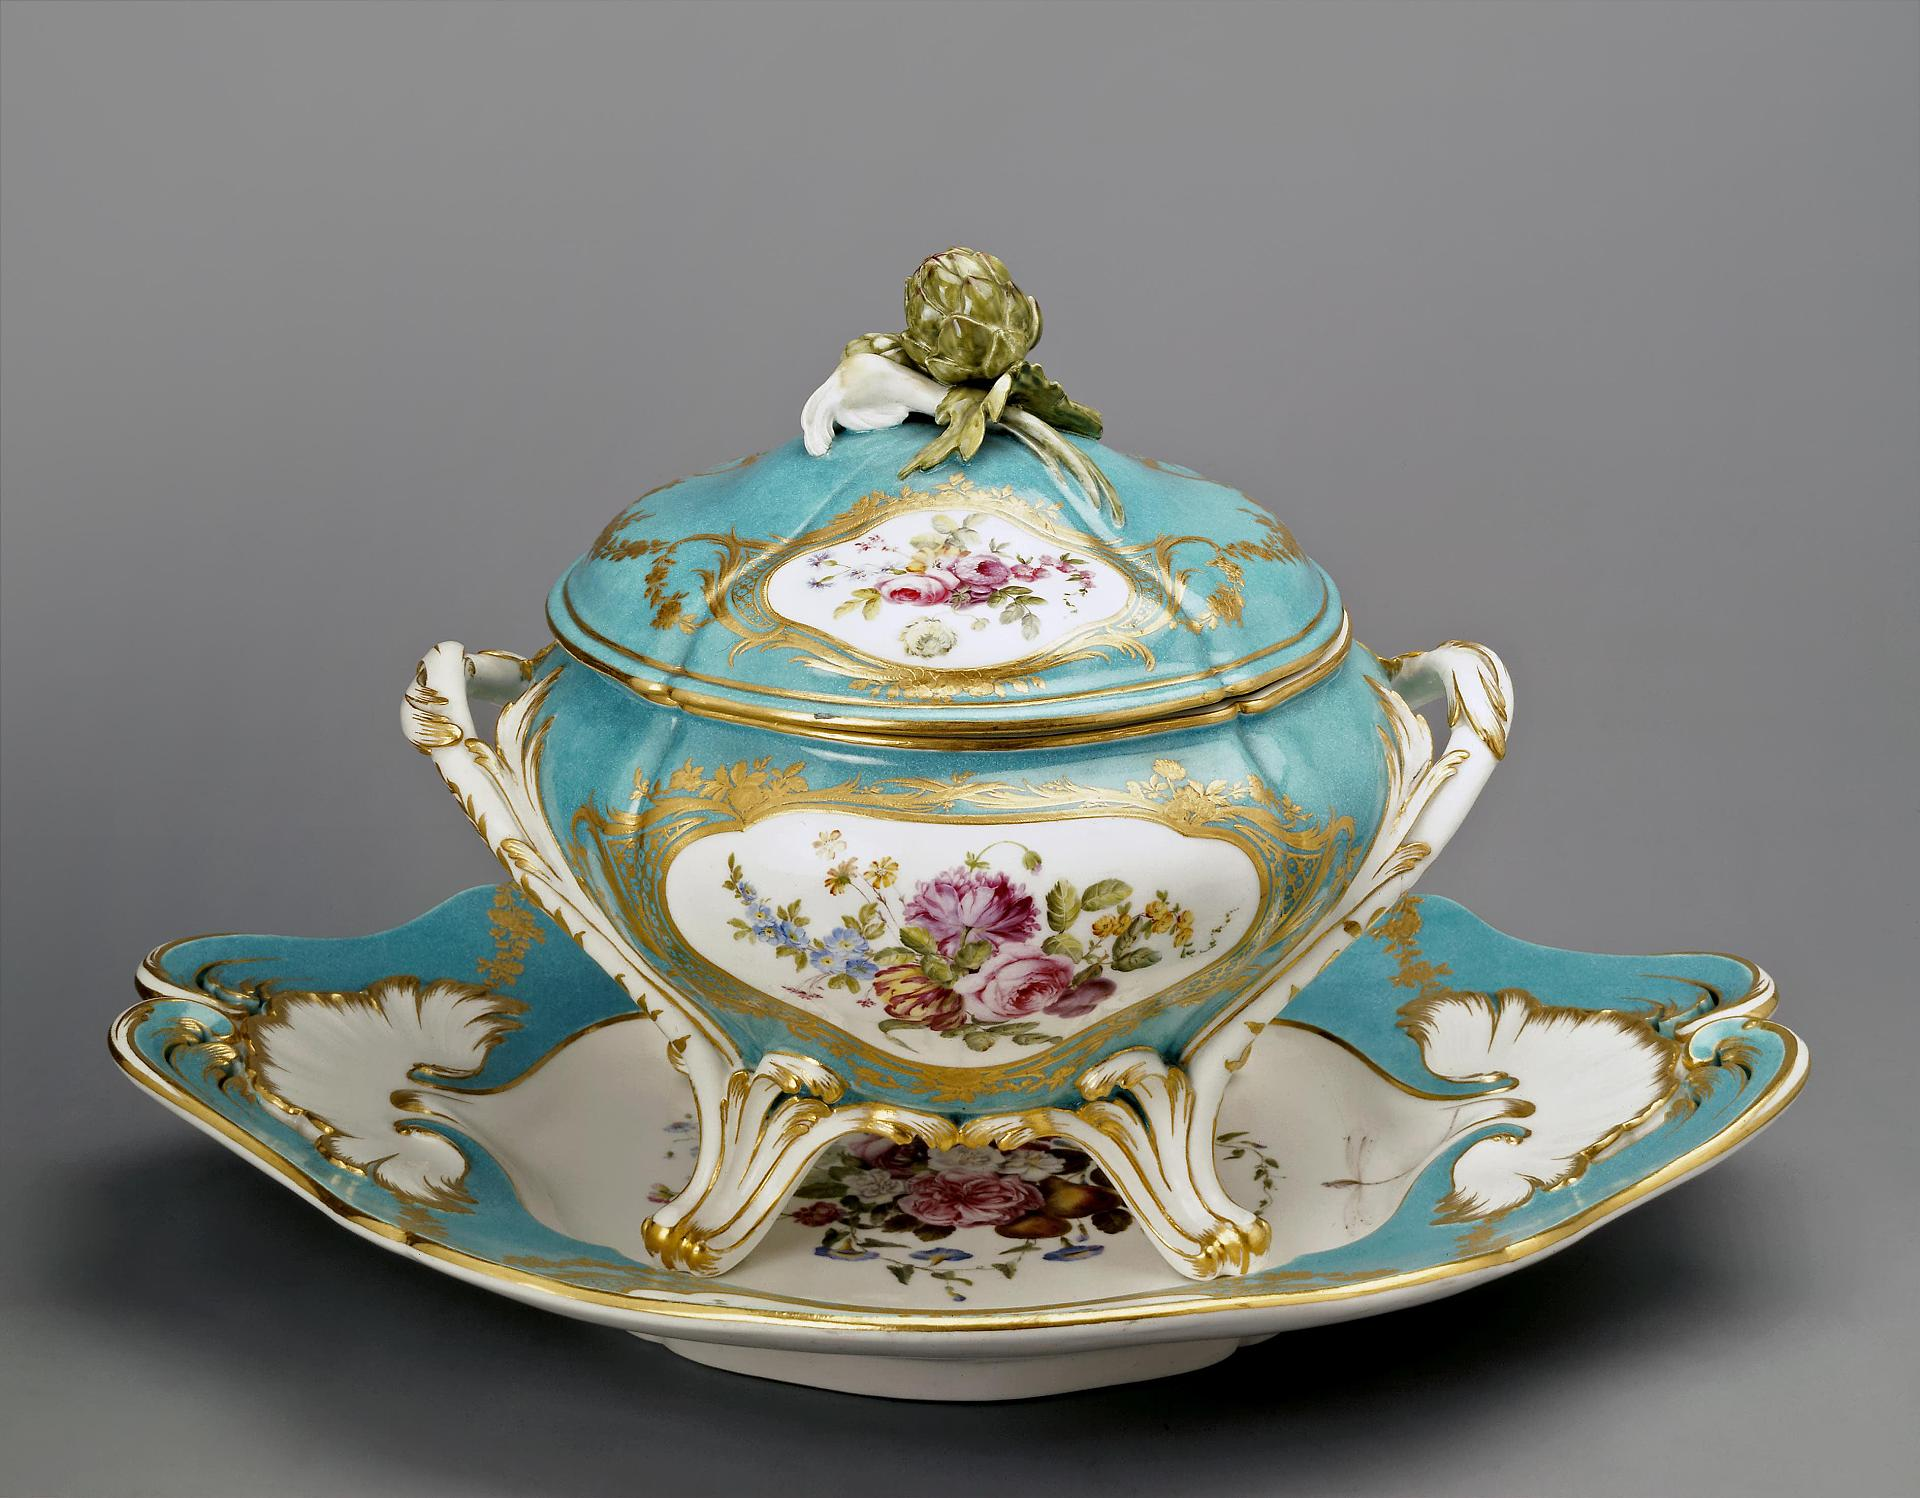 A bowl with a lid, France, Sèvres, 1760, soft porcelain